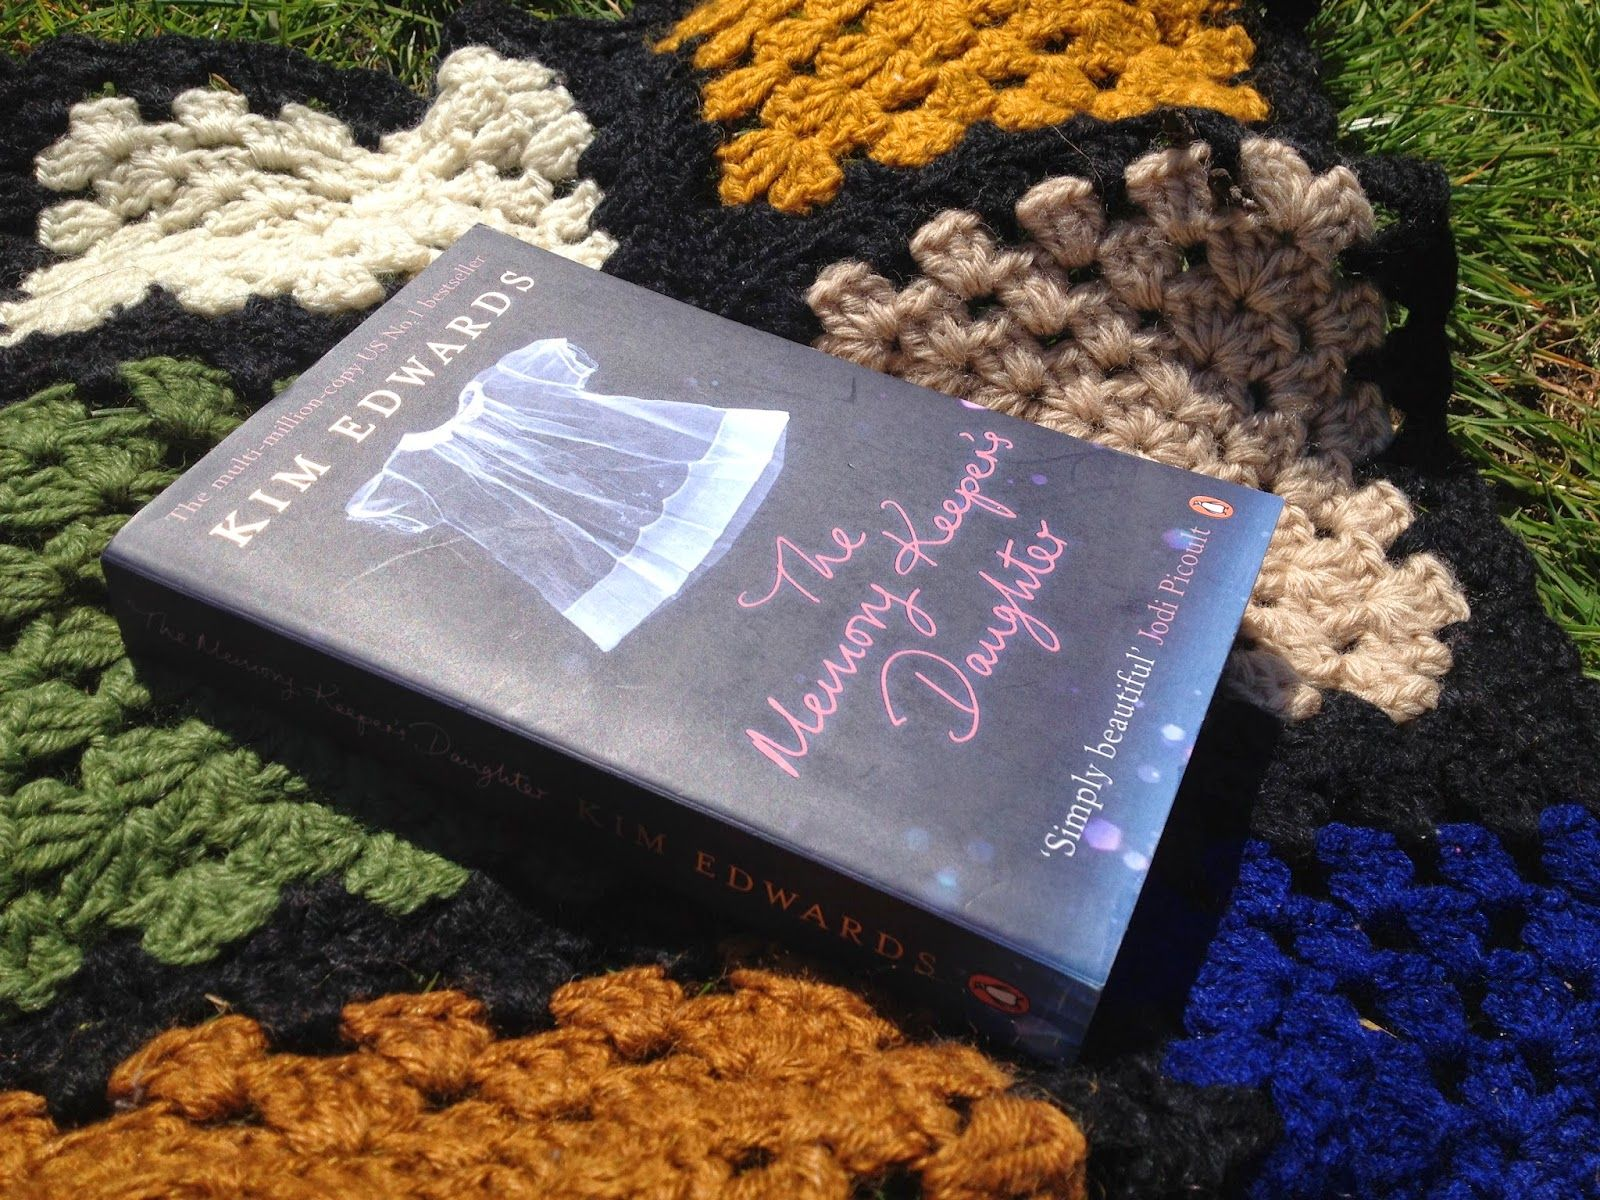 Reading in the sun... My husbands grandmother made the blanket.